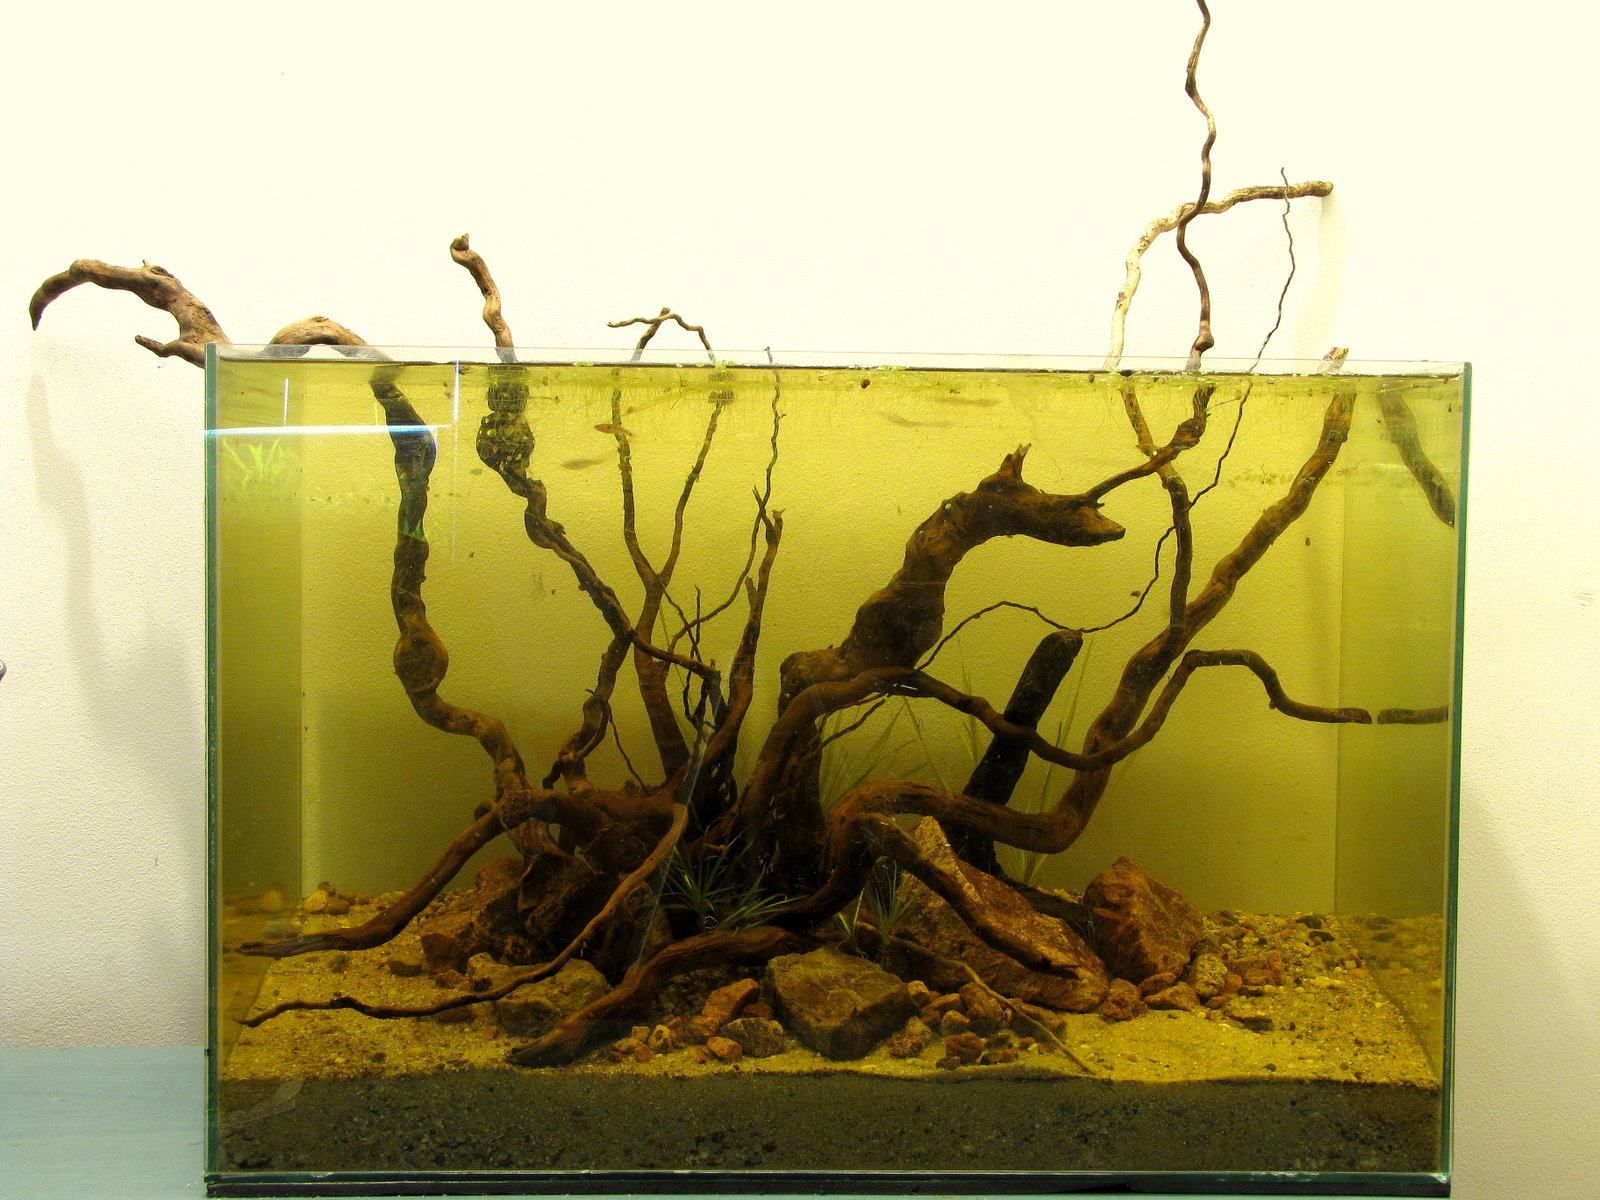 Borko's hobbies: Mizube biotope / aquascape